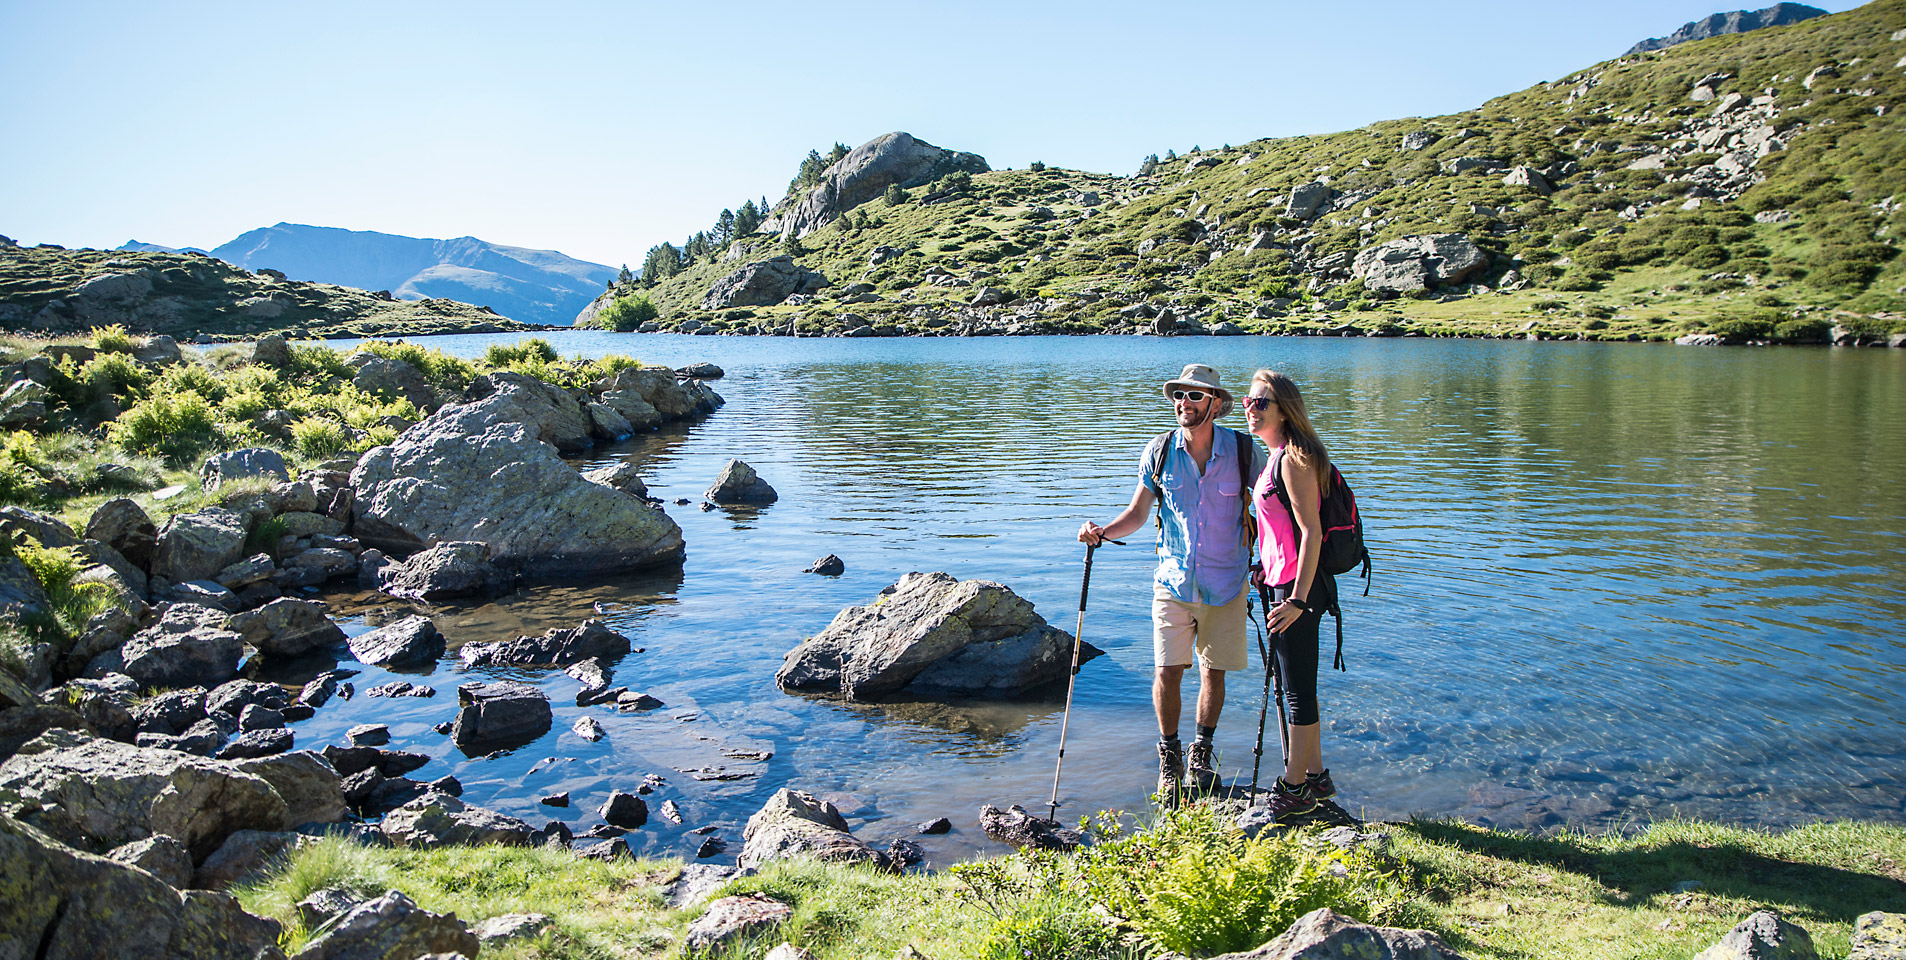 FALL IN LOVE WITH ANDORRA IN SUMMER